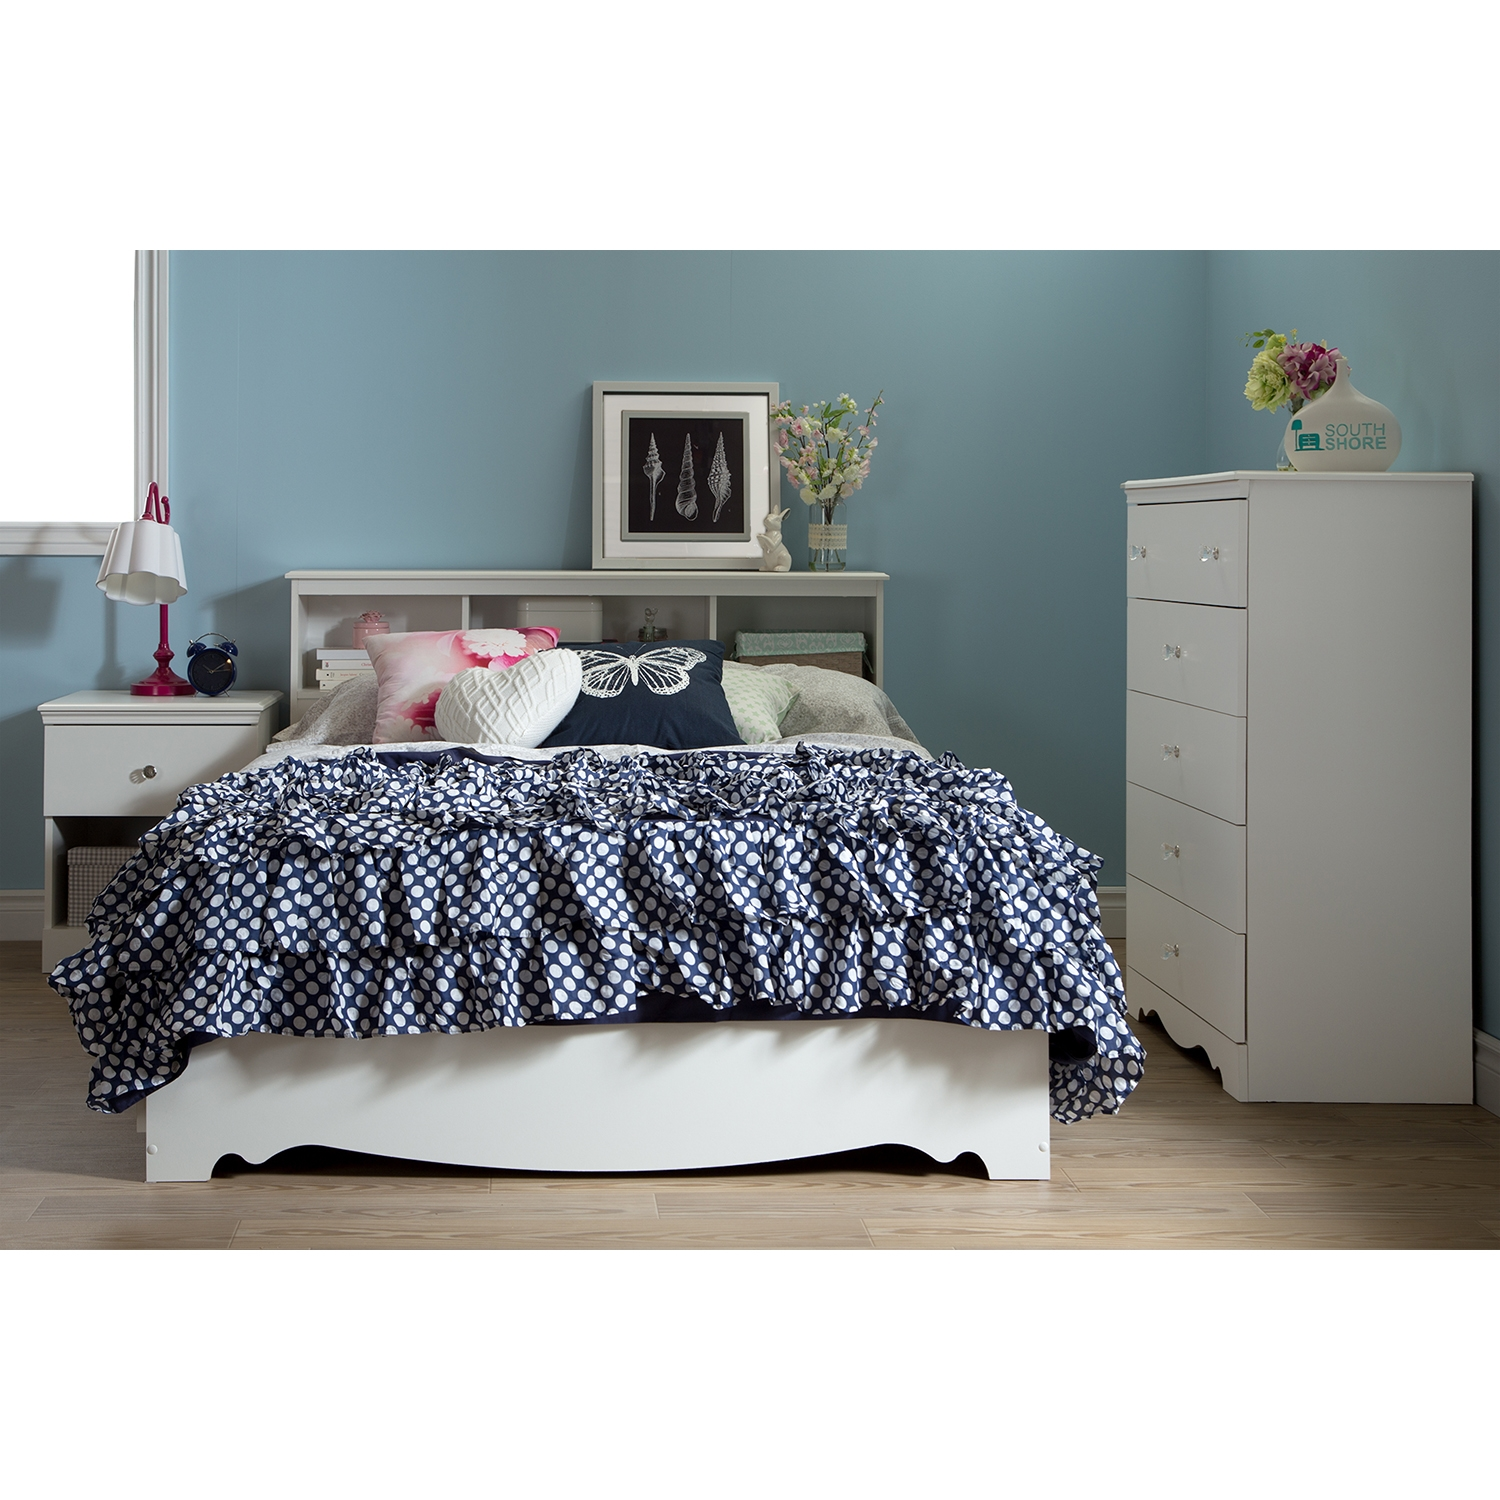 Crystal Full Mates Bed - 3 Drawers, Pure White - SS-3550211